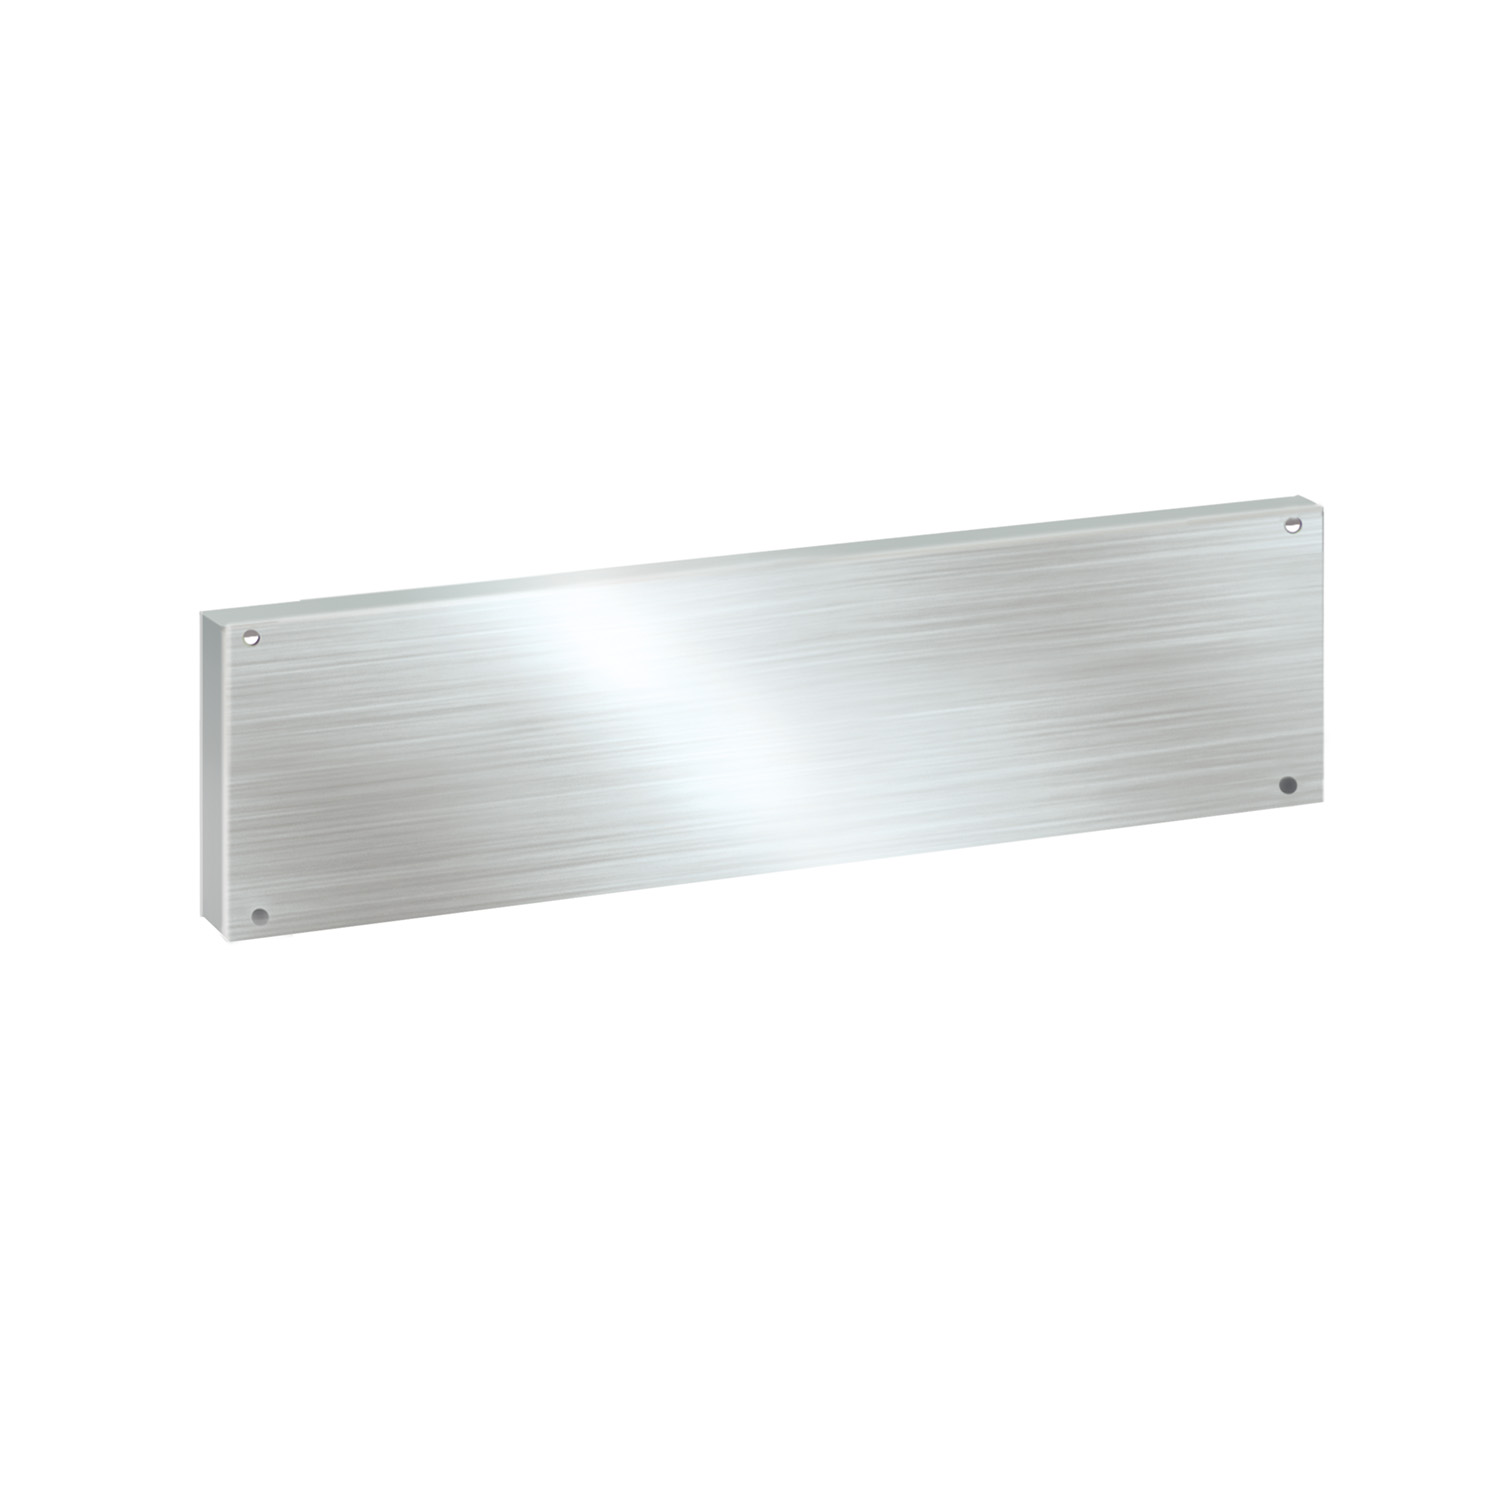 Stainless steel back panel (160 x 600mm)